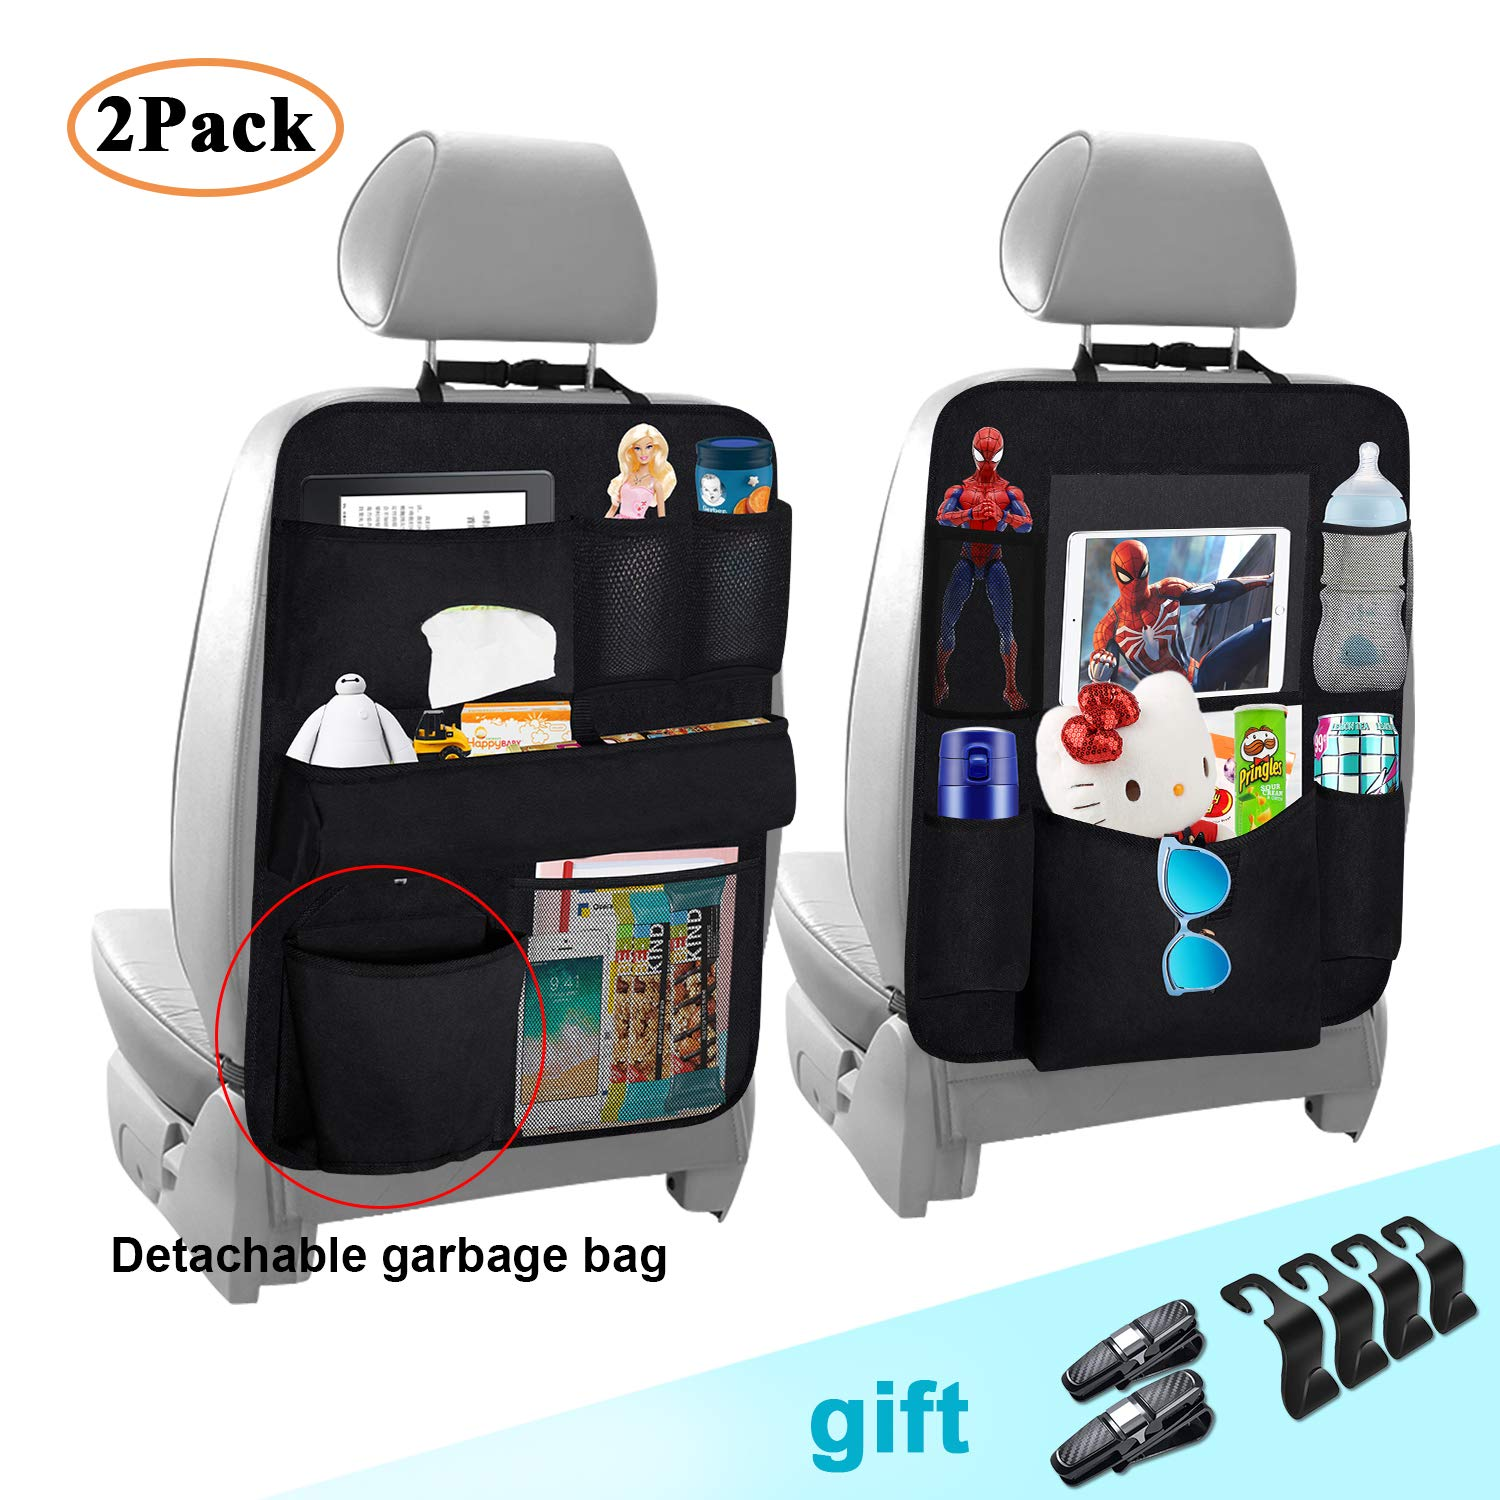 Cadaleem Car Backseat Organizer(2 Pack), Vehicle Seat Back Protector Kick Mat, Seat Back Headrest Hooks & Car Glasses Holders, Universal Use Travel Accessories for Kids, Toddlers and Adults by Cadaleem